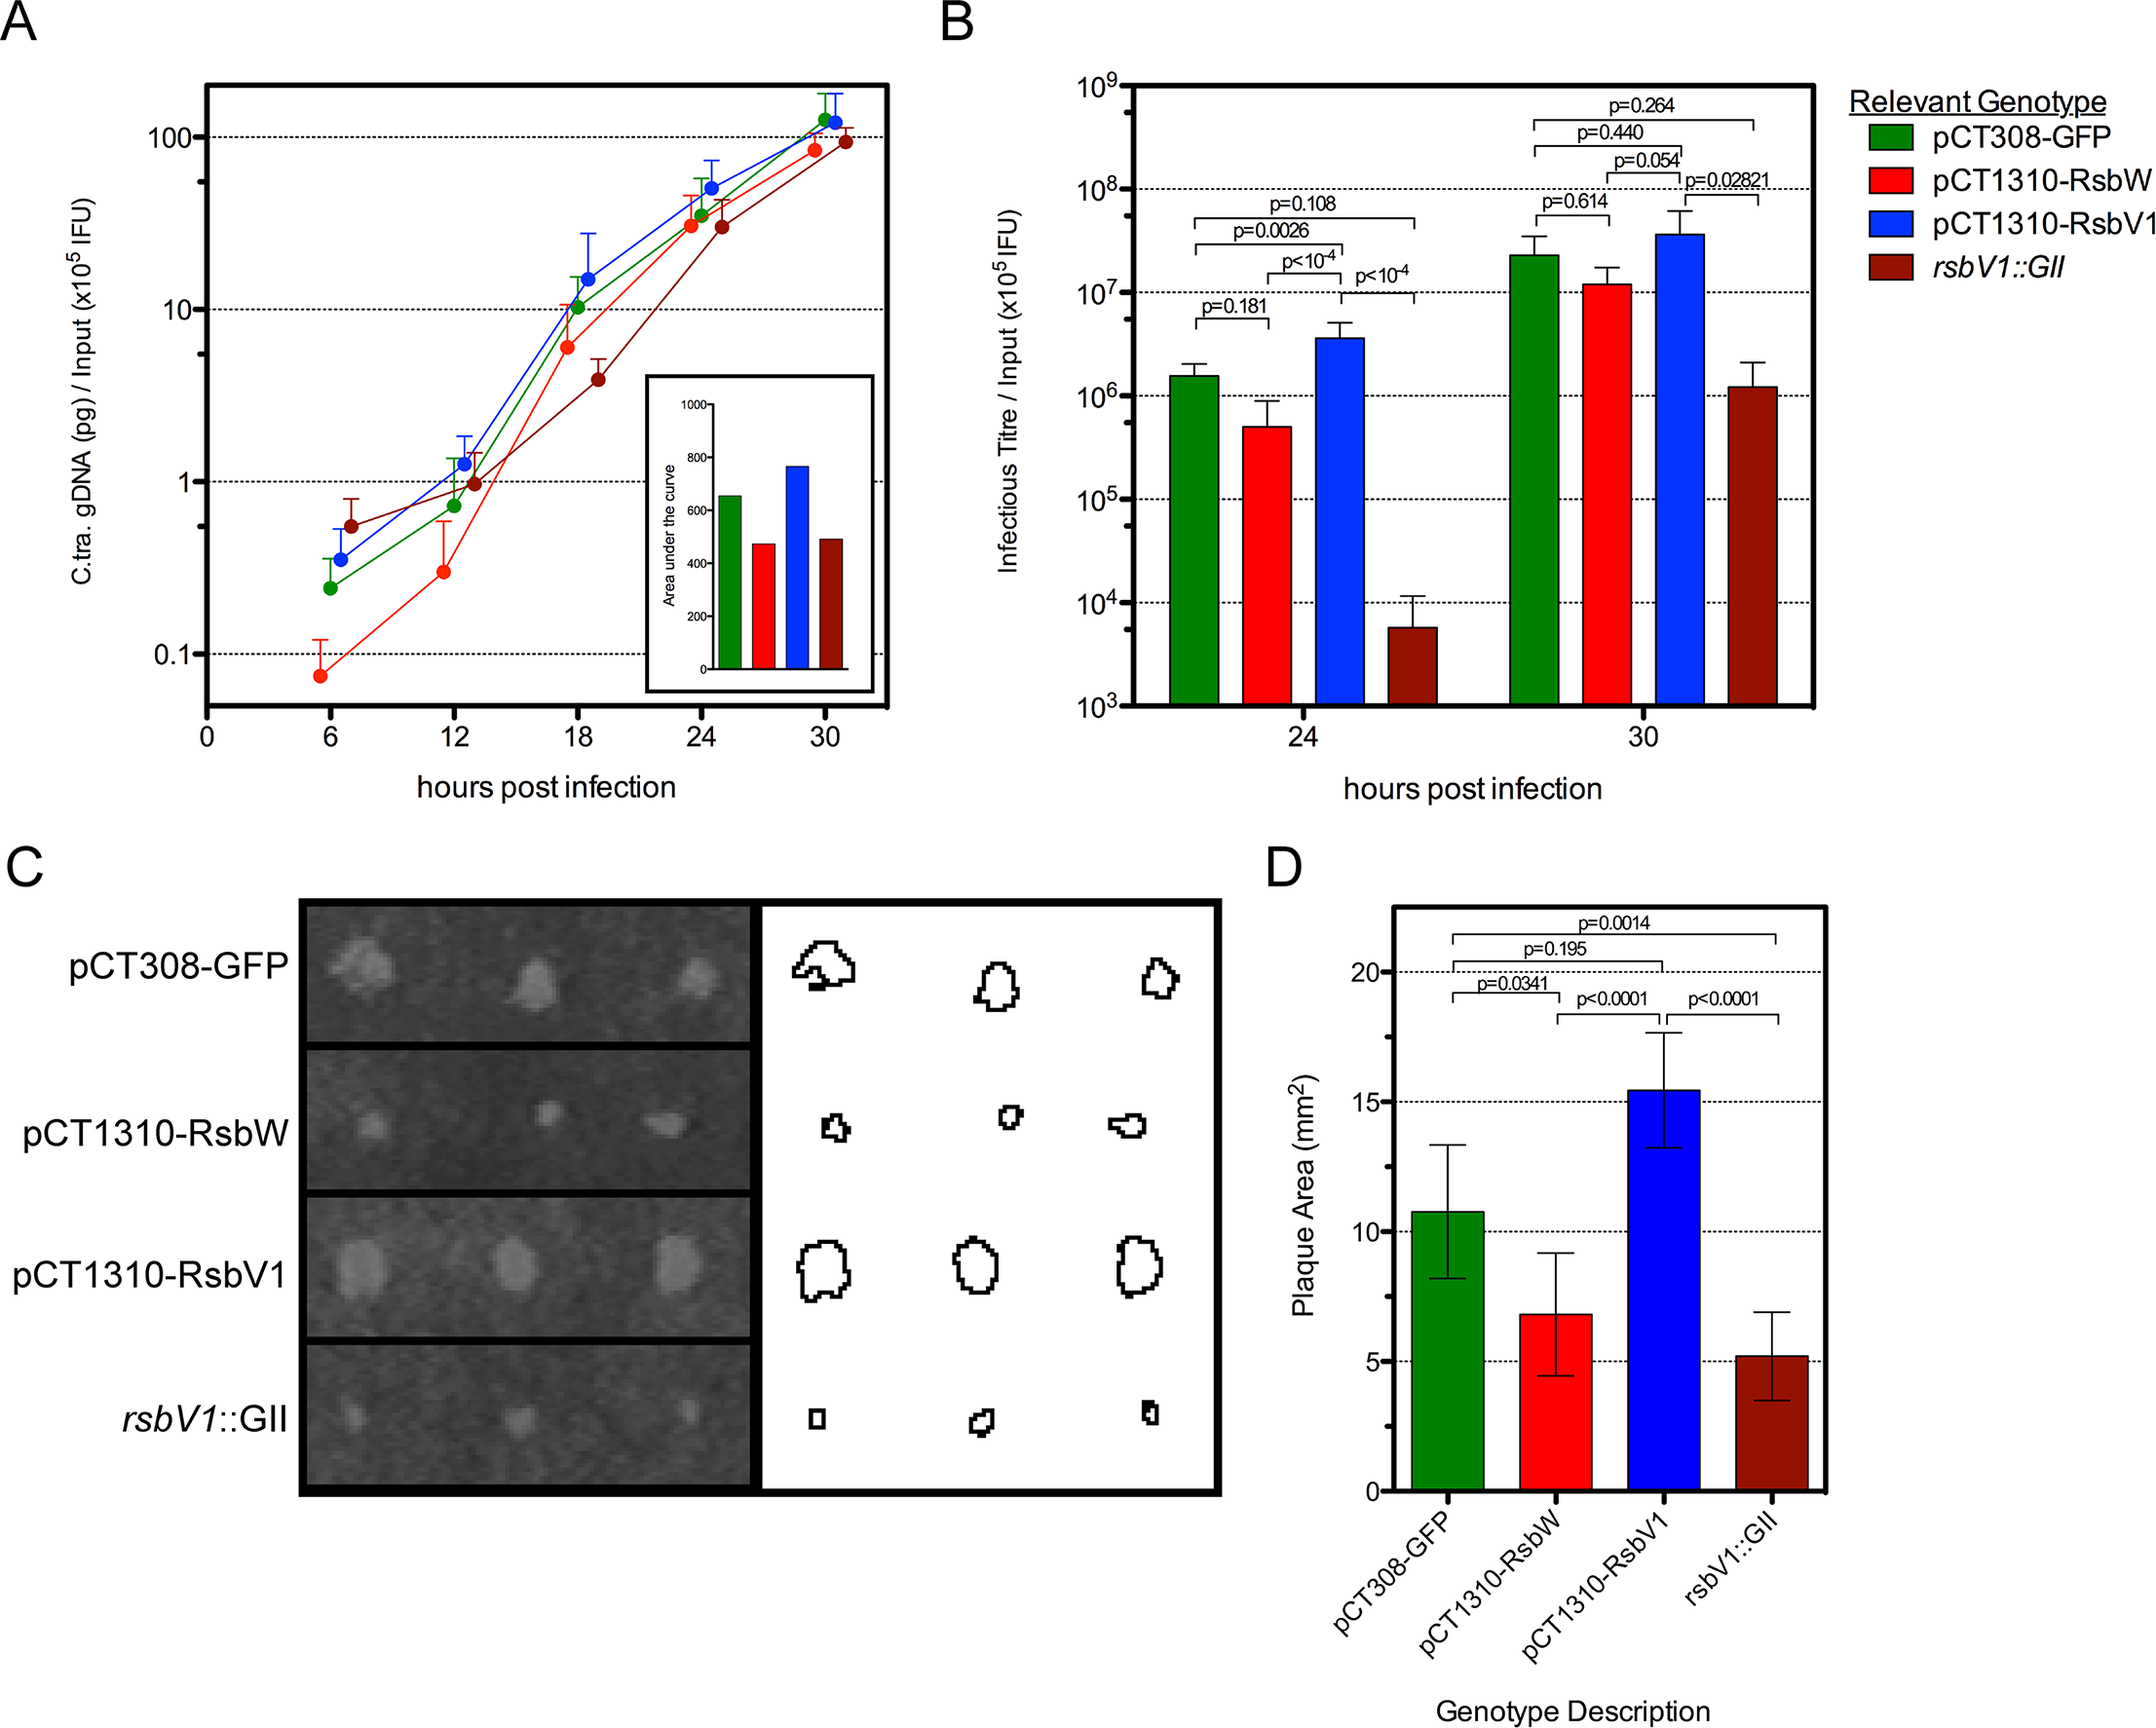 The effect of <i>rsbW</i> and <i>rsbV1</i> expression on genomic replication and development of infectious progeny.